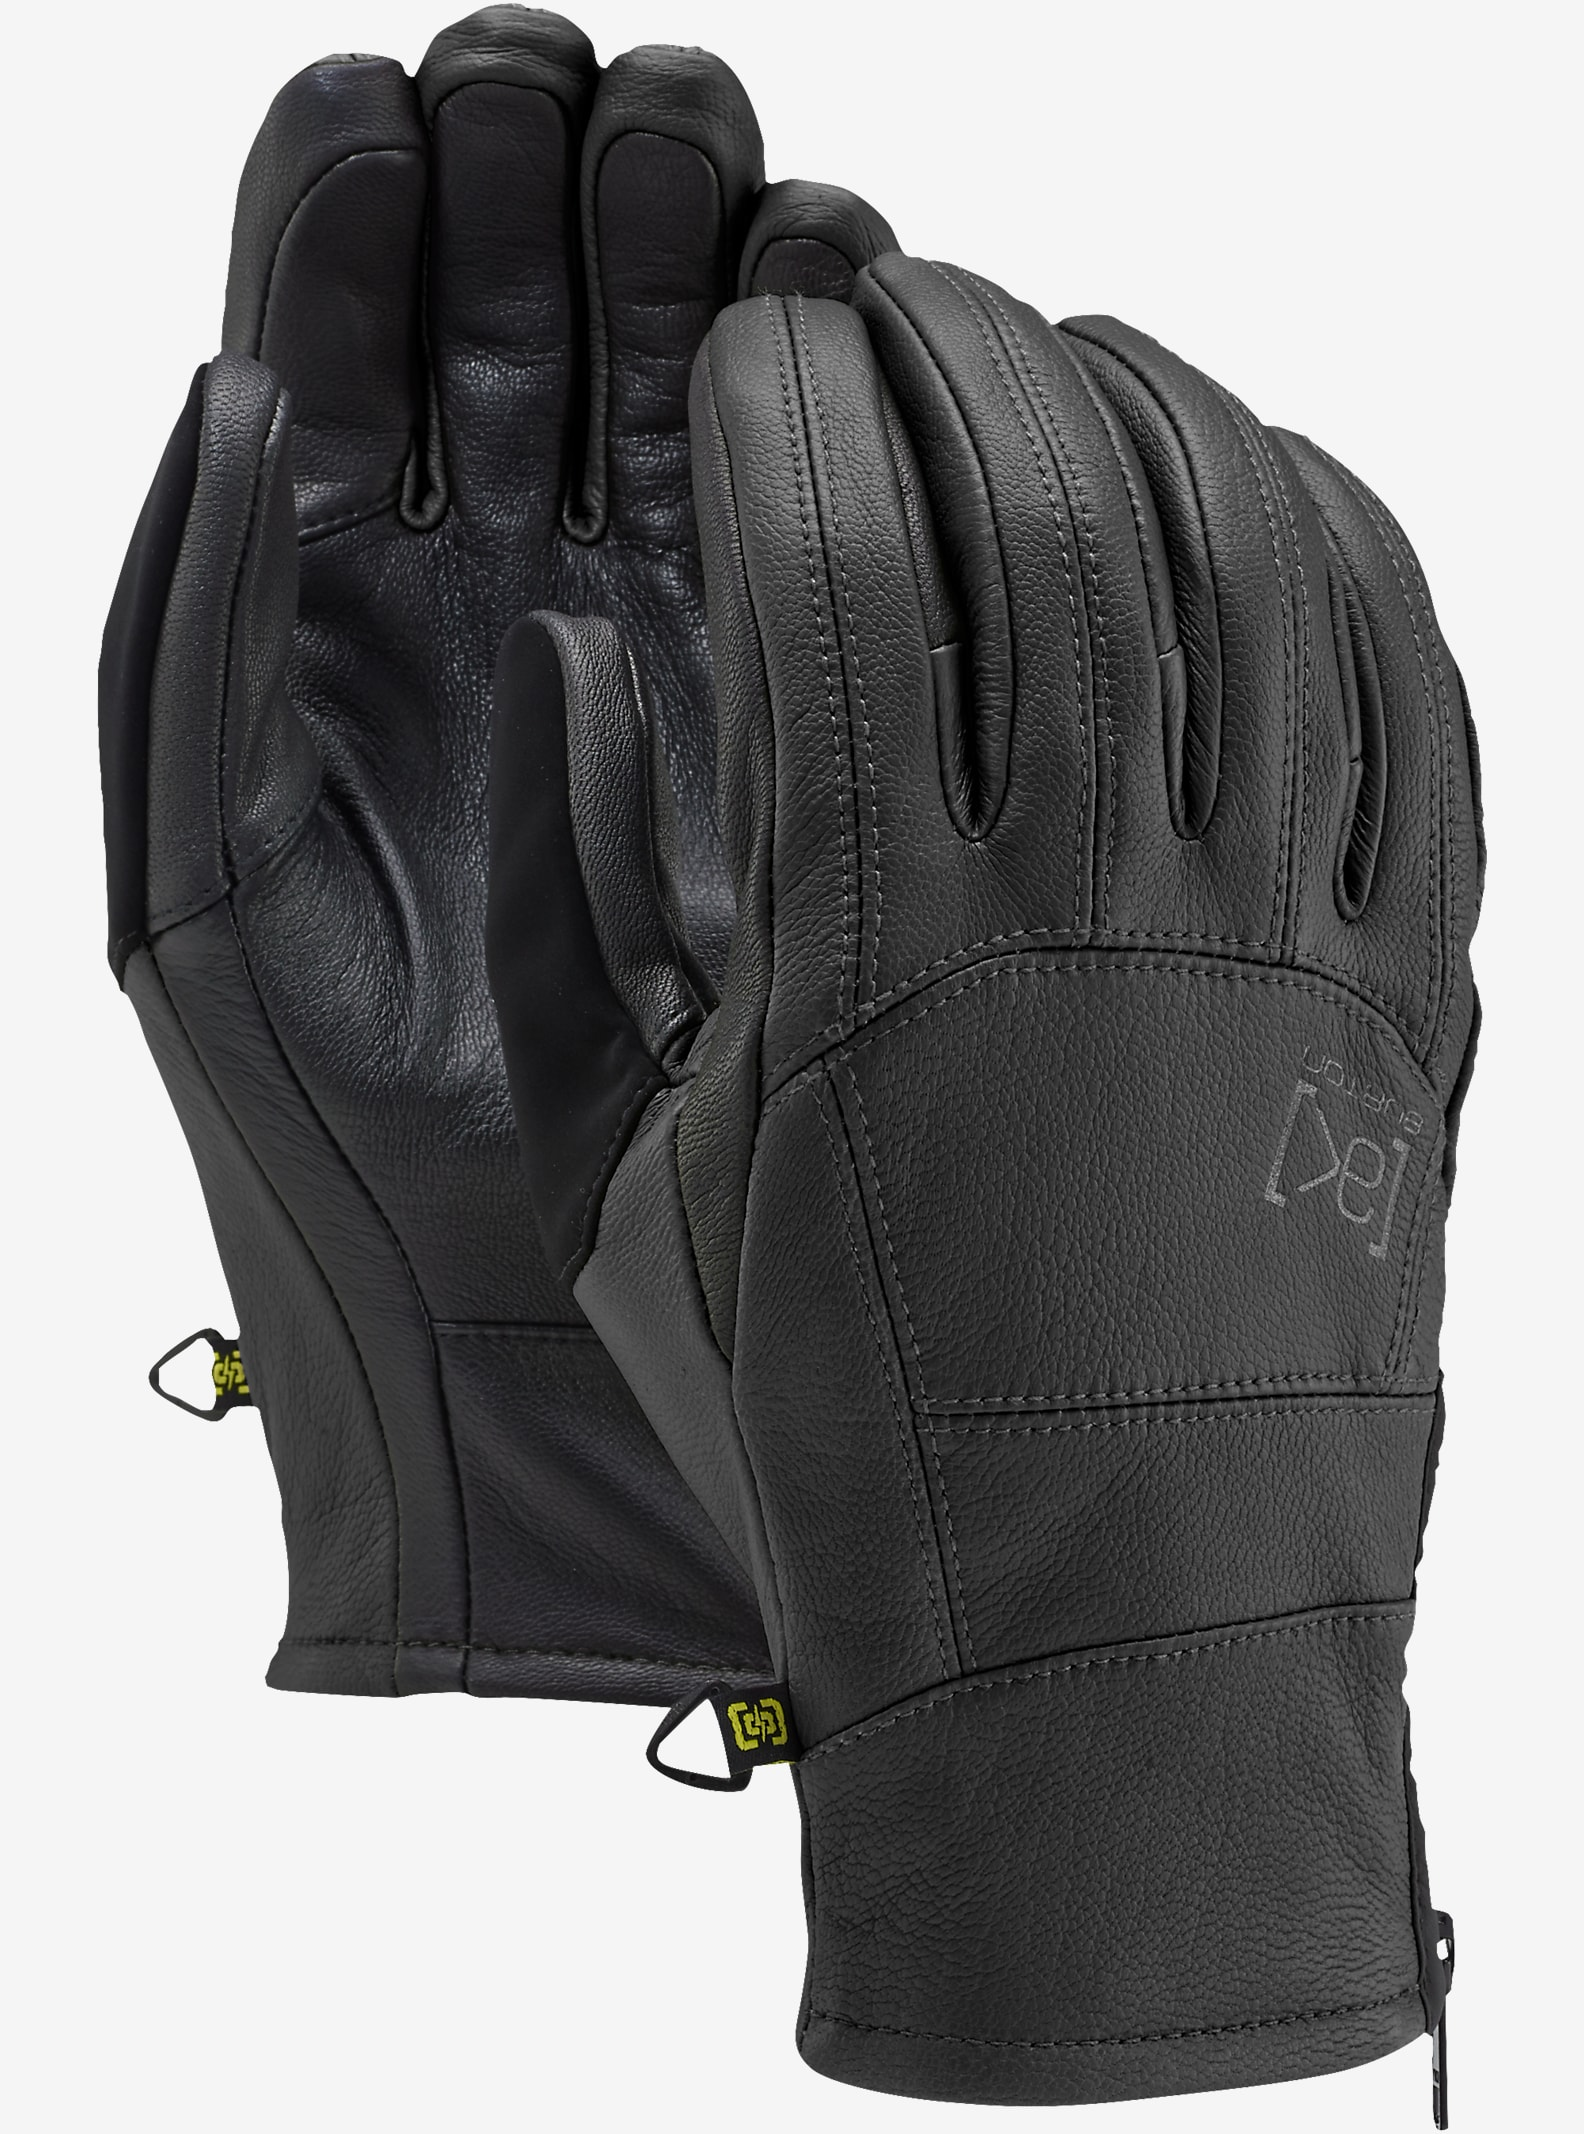 Mens winter gloves xxl - Burton Ak Leather Tech Glove Shown In True Black